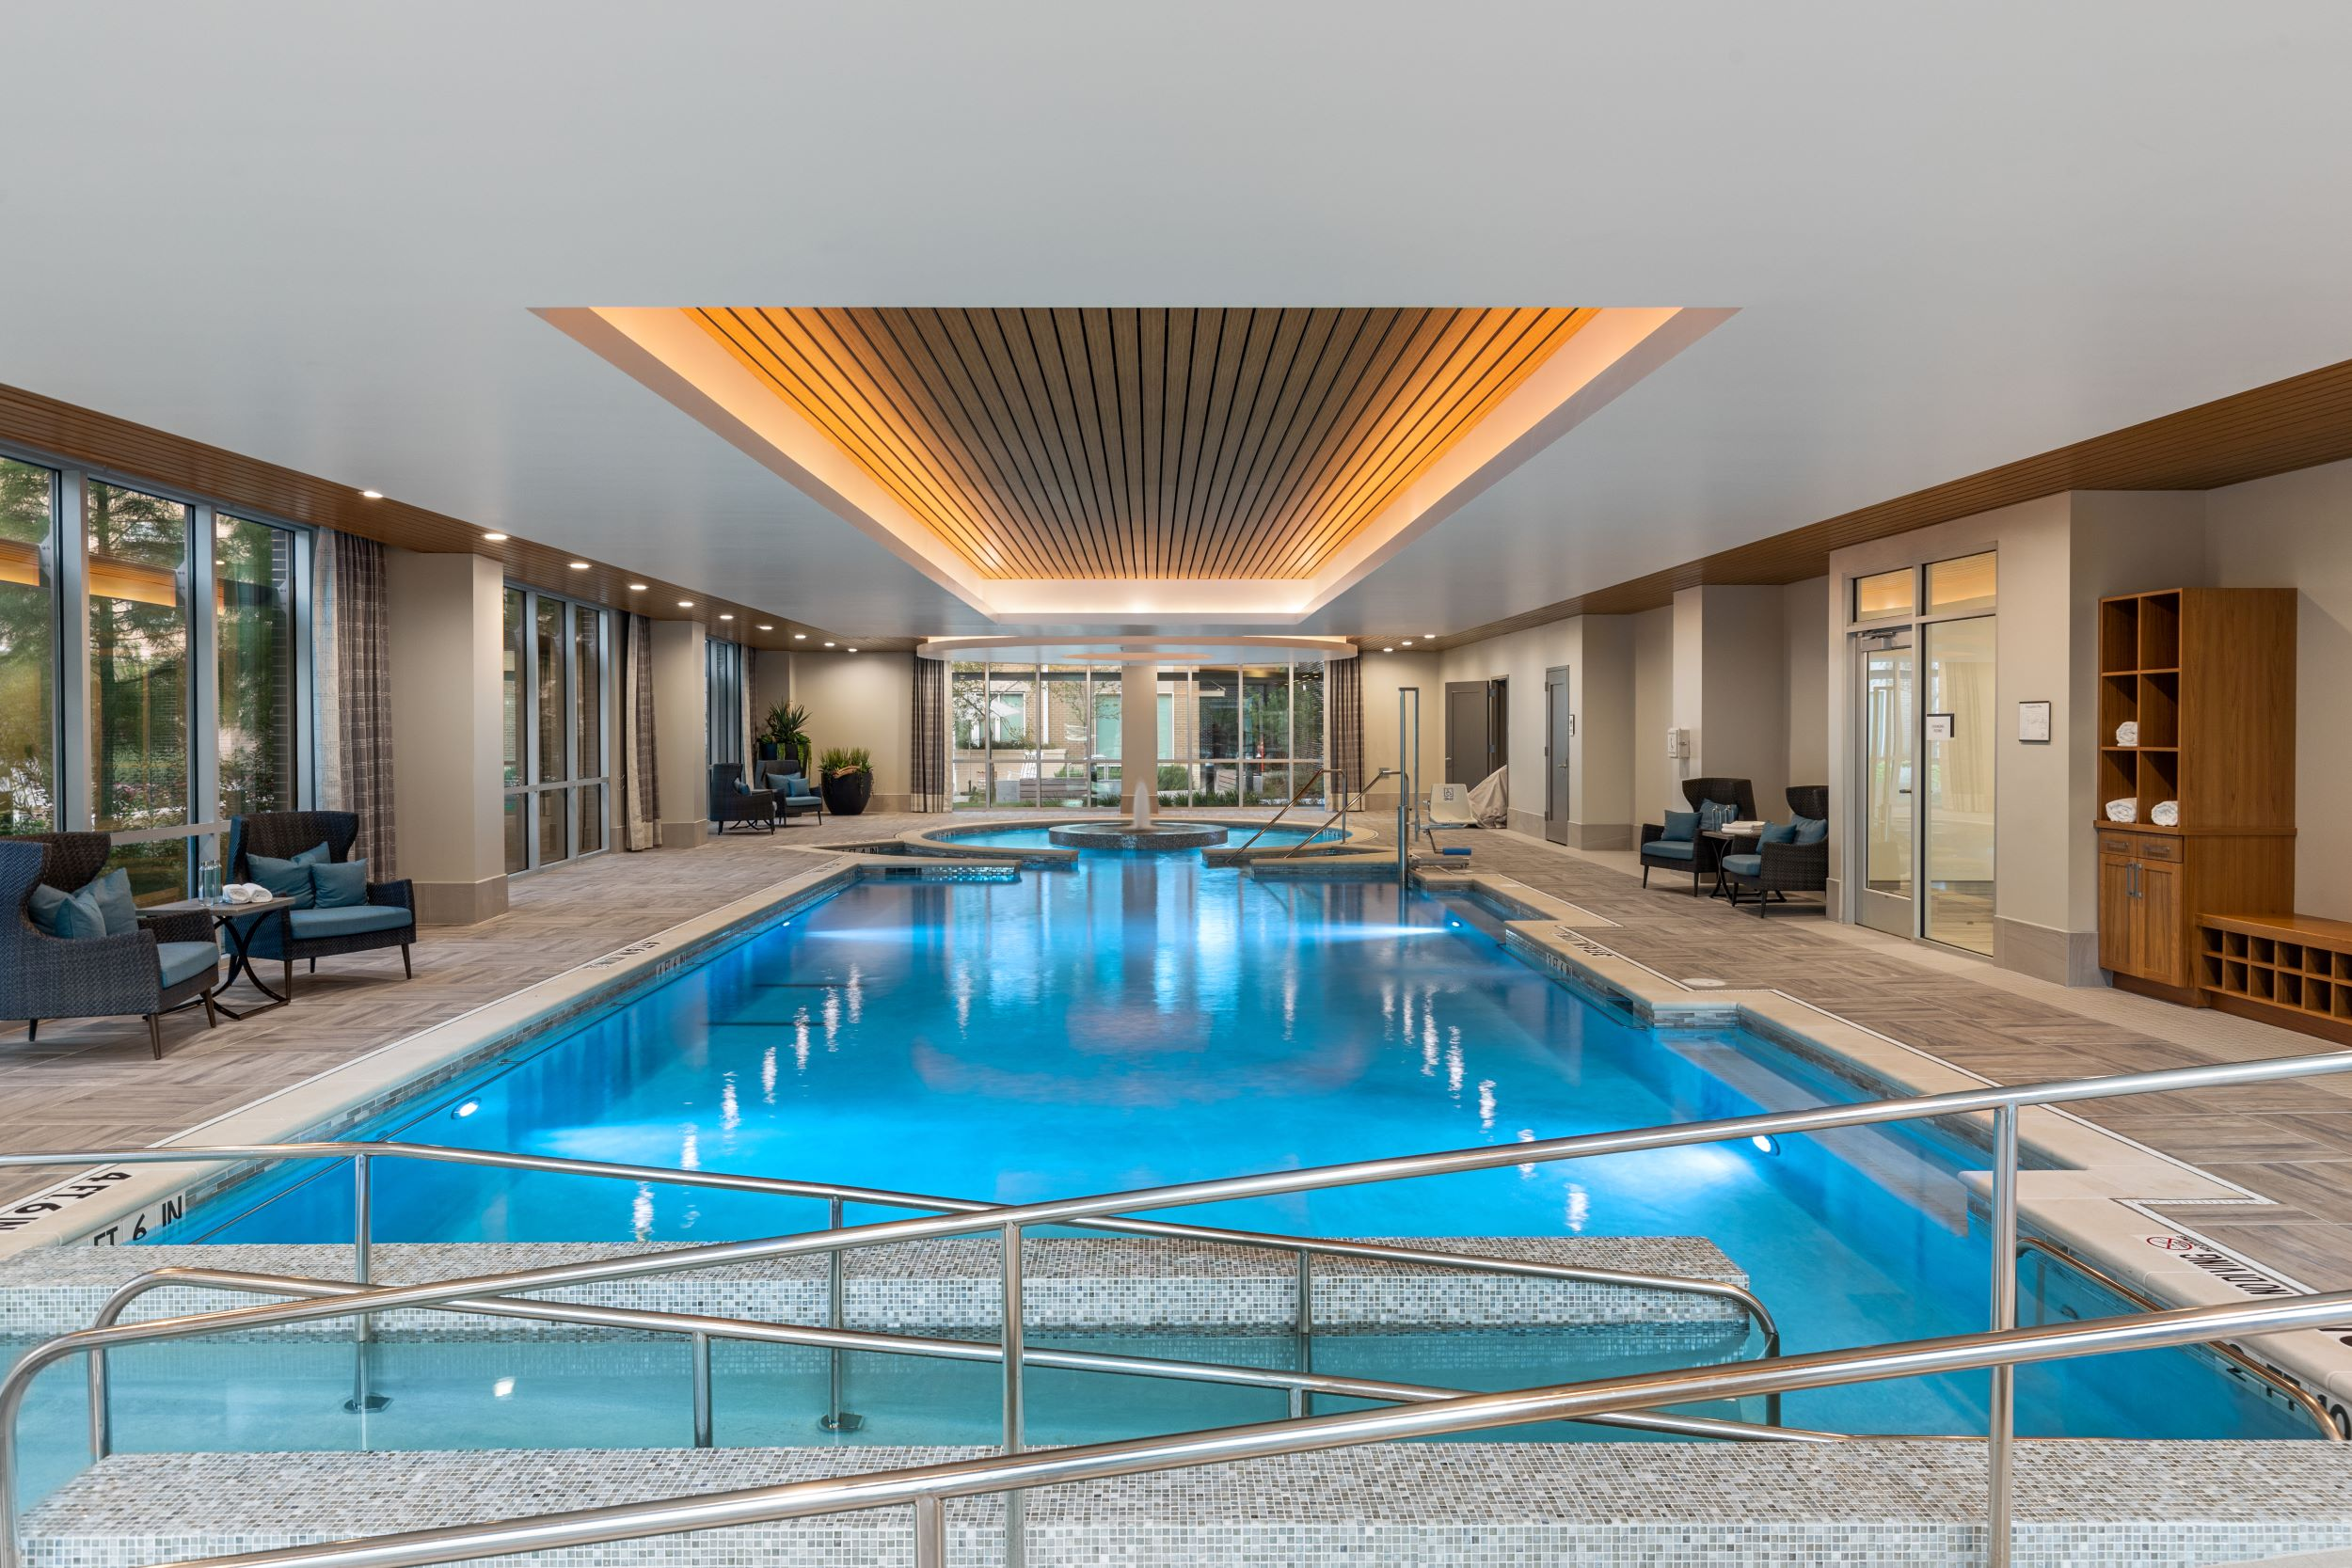 The Vista indoor swimming pool